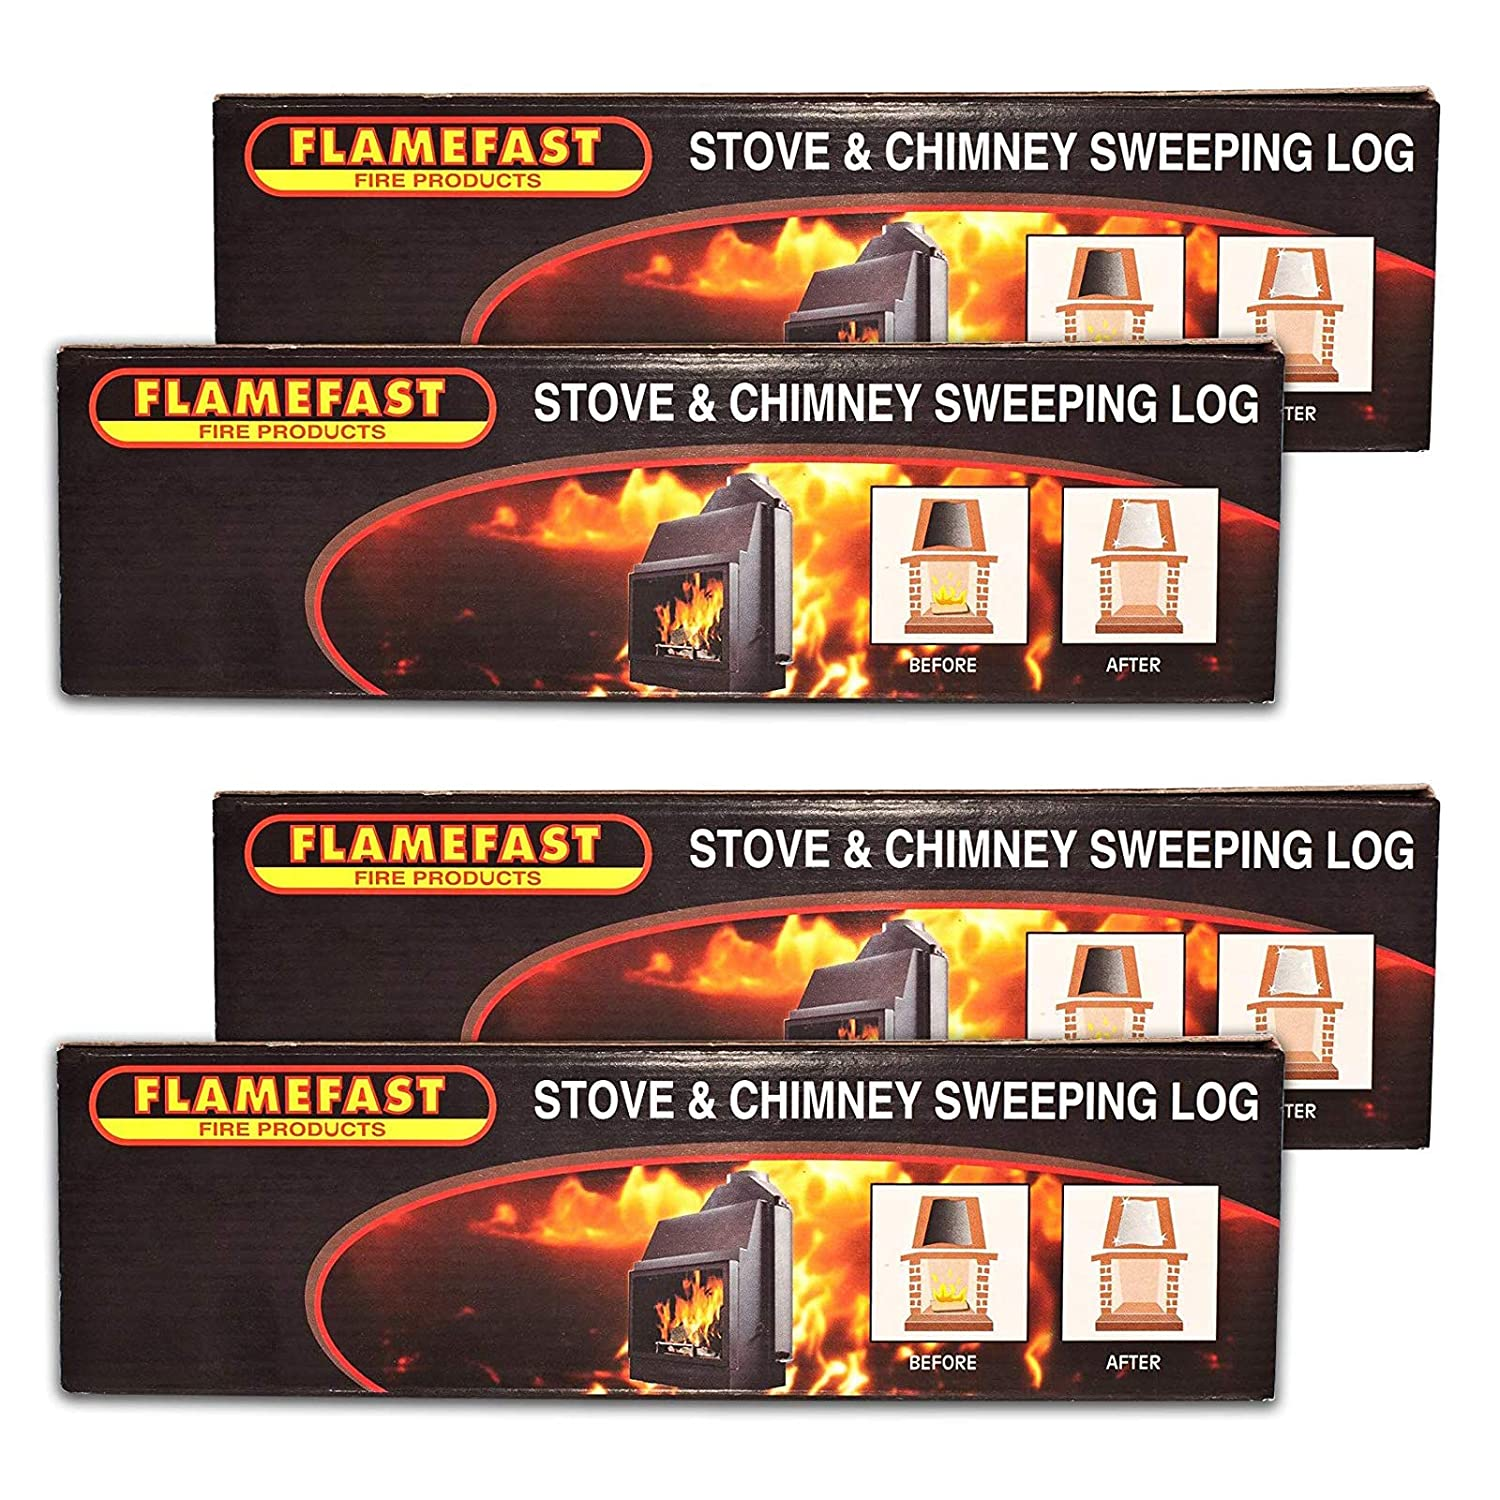 4 x Flamefast Stove & Chimney Sweeping Log Helps to Remove Creosote, Soot and Tar Deposits